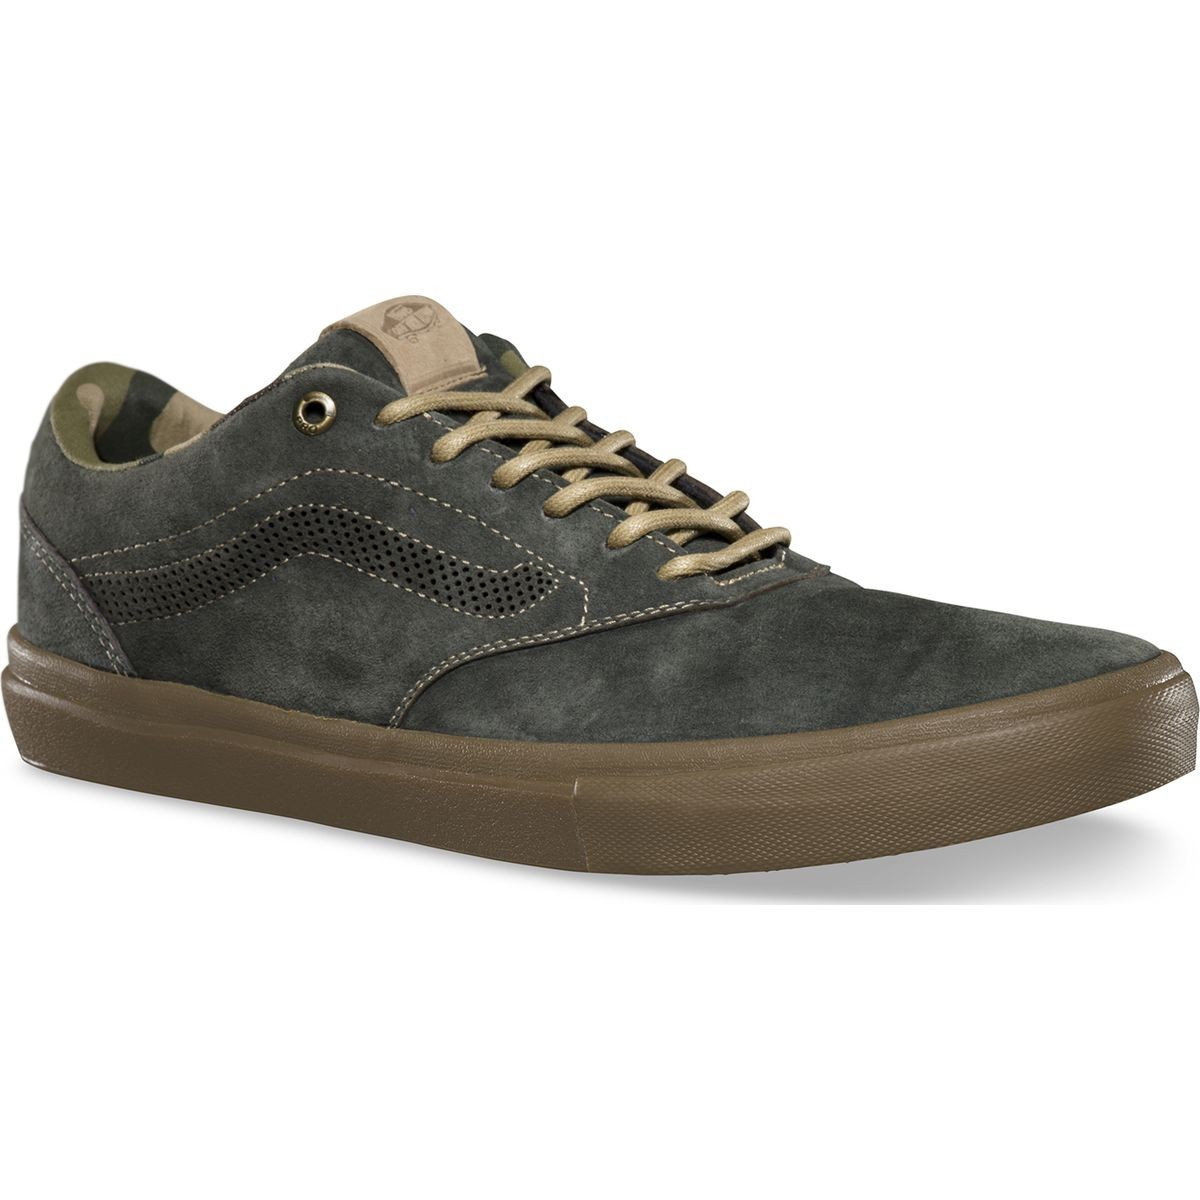 Vans Outdoor Euclid Shoes - Dark Military